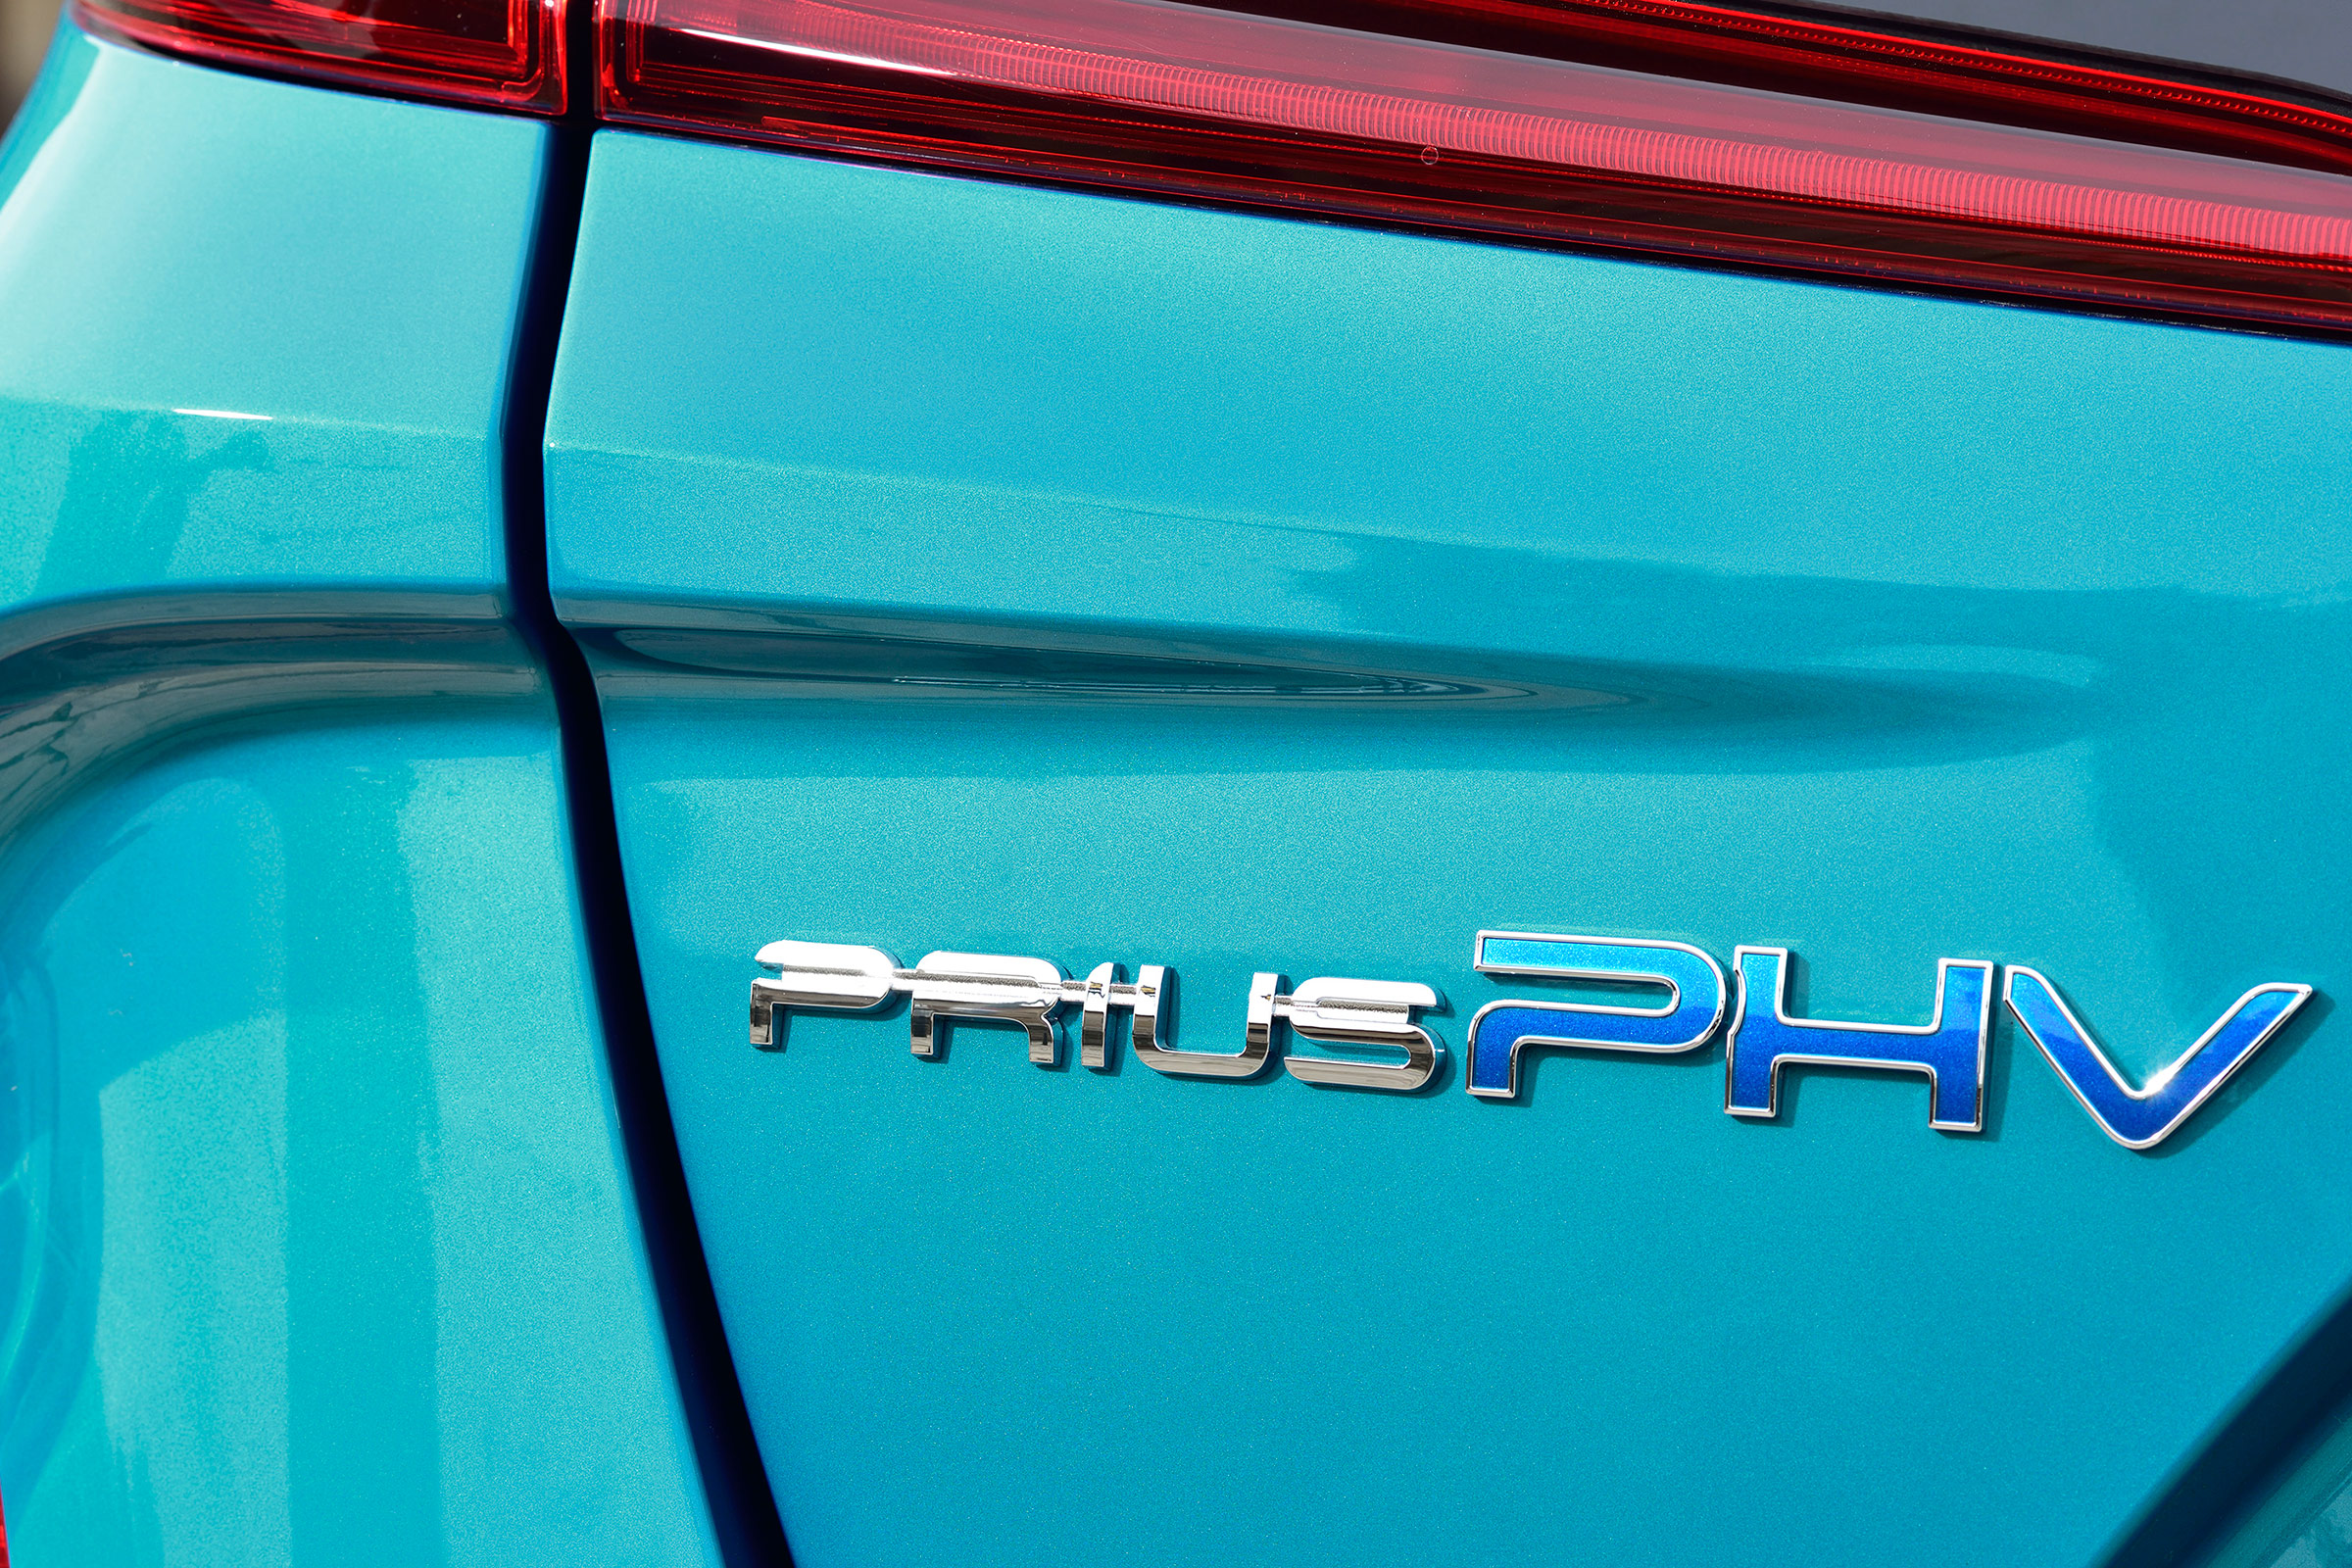 2017 Toyota Prius Blue Exterior View Rear Emblem (Photo 4 of 64)